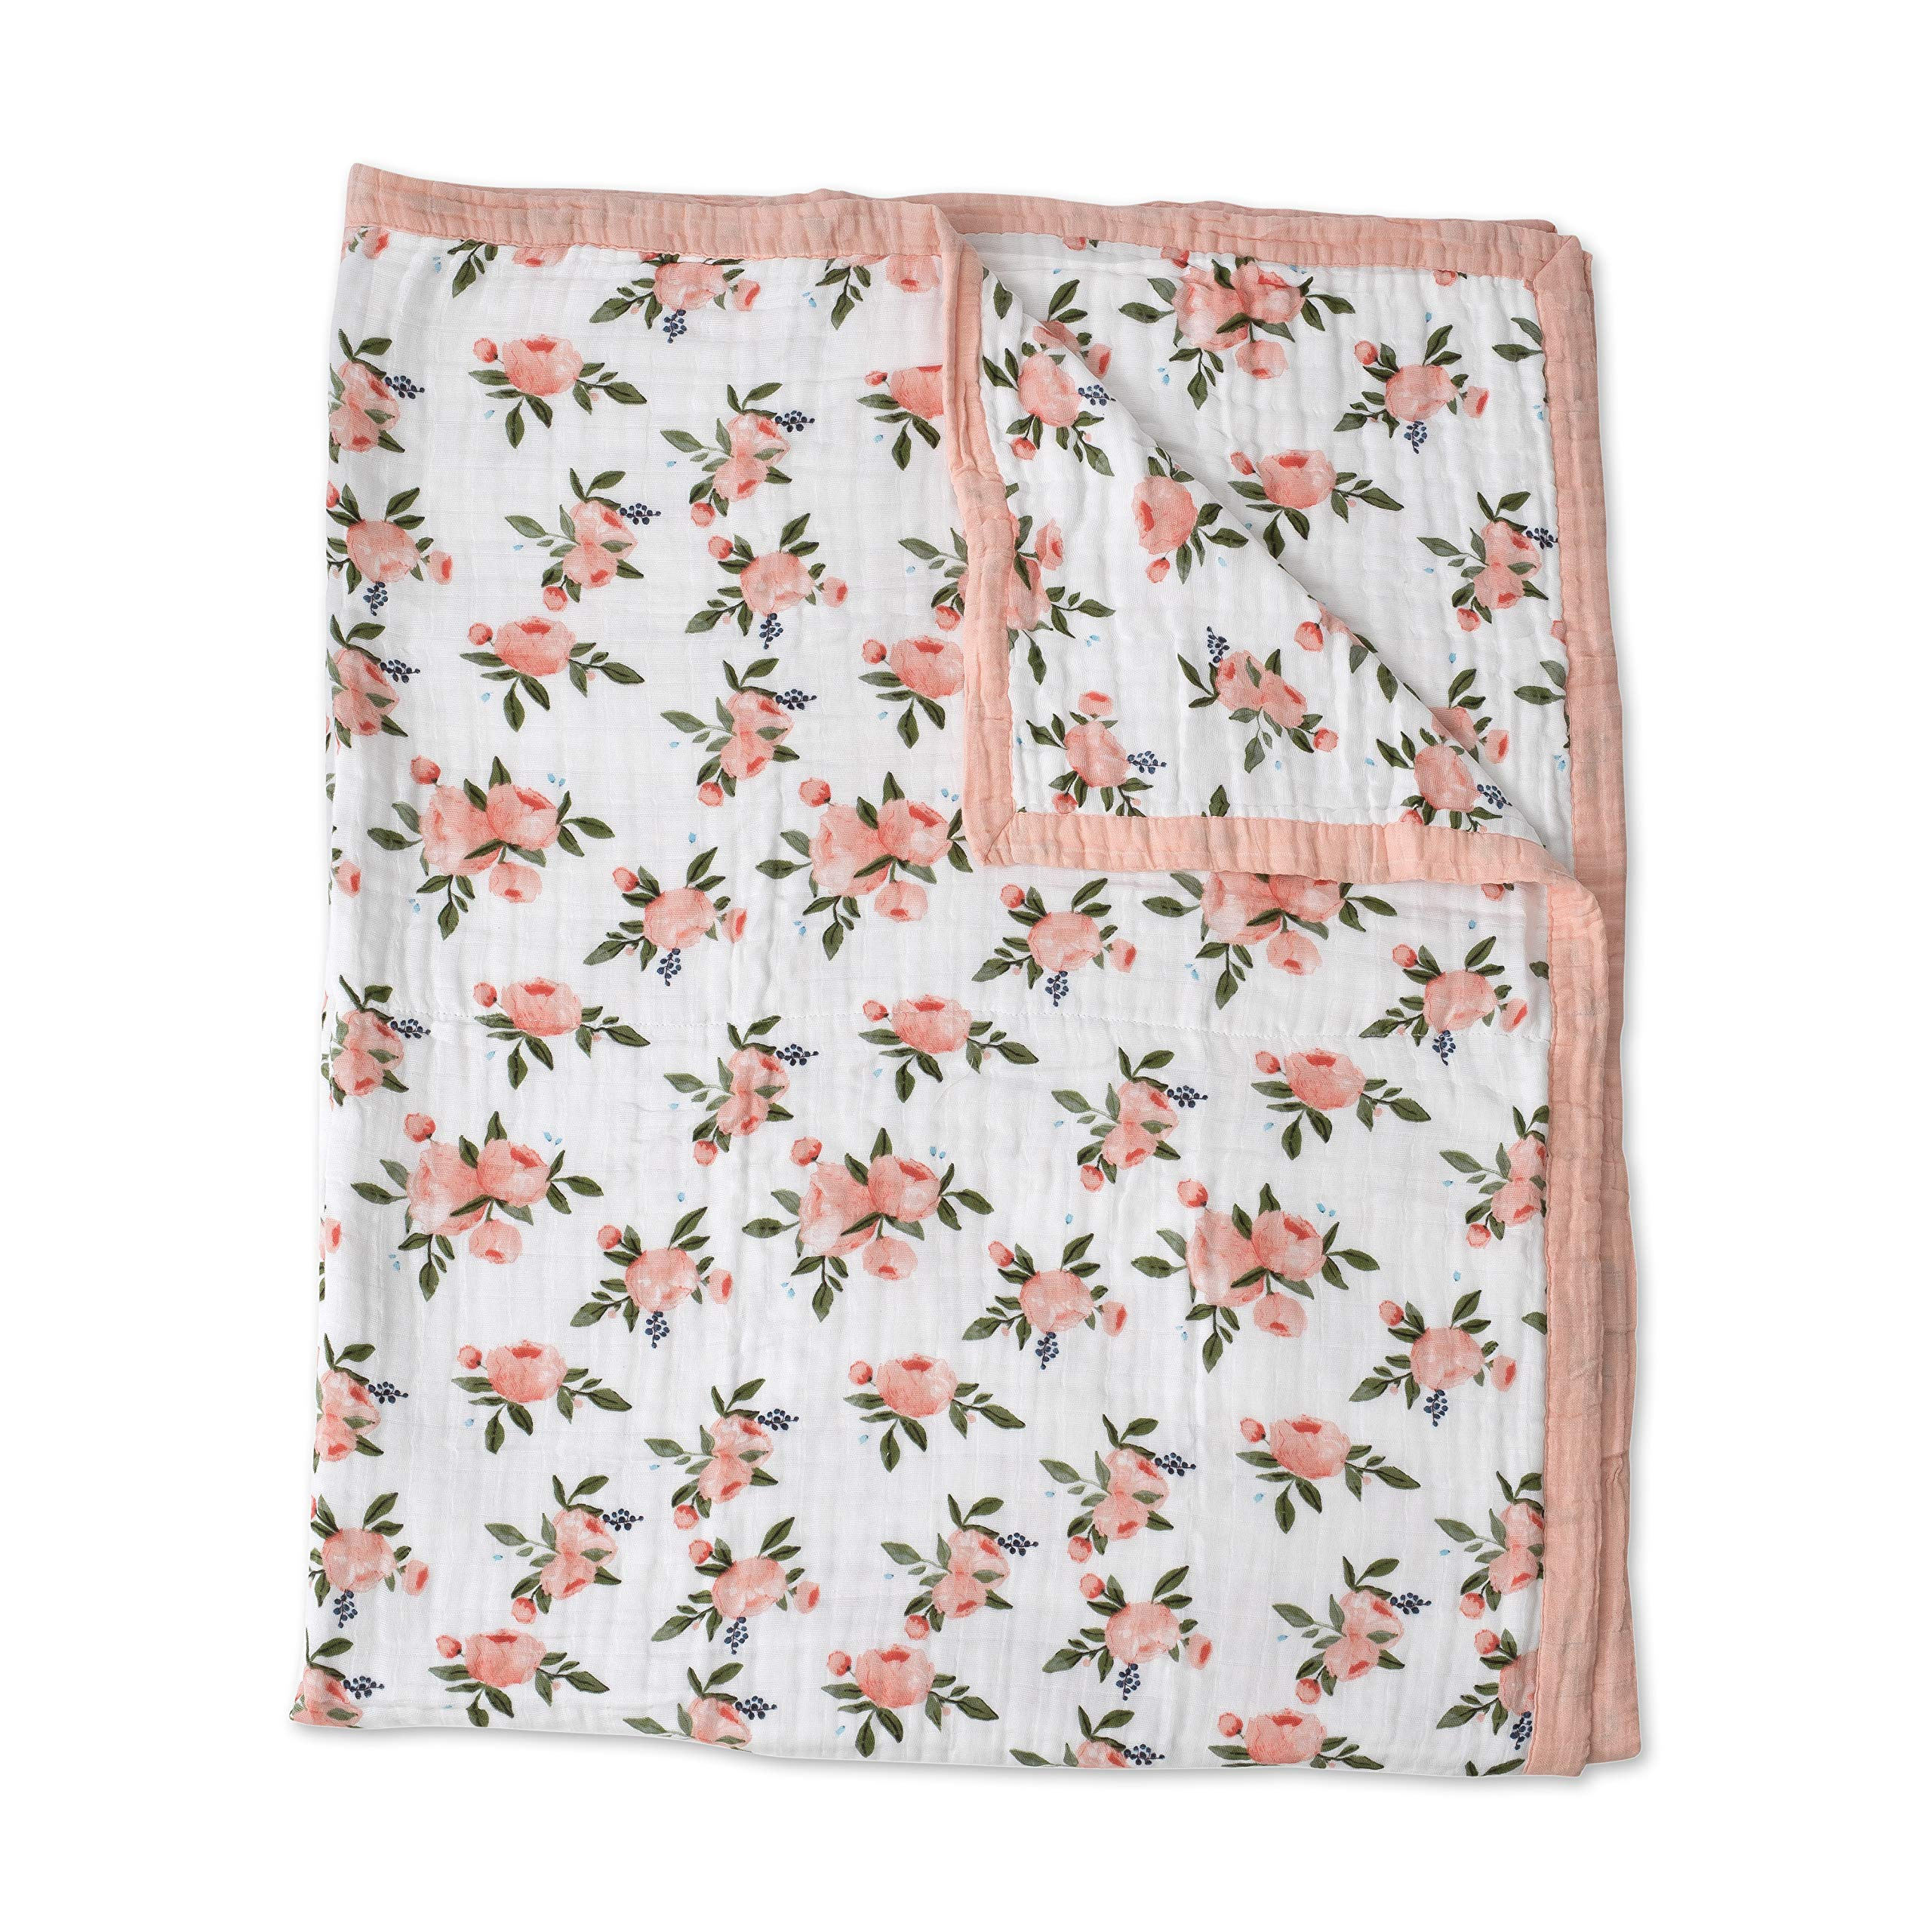 Little Unicorn Extra Soft Cotton Muslin Large Quilt - Watercolor Roses